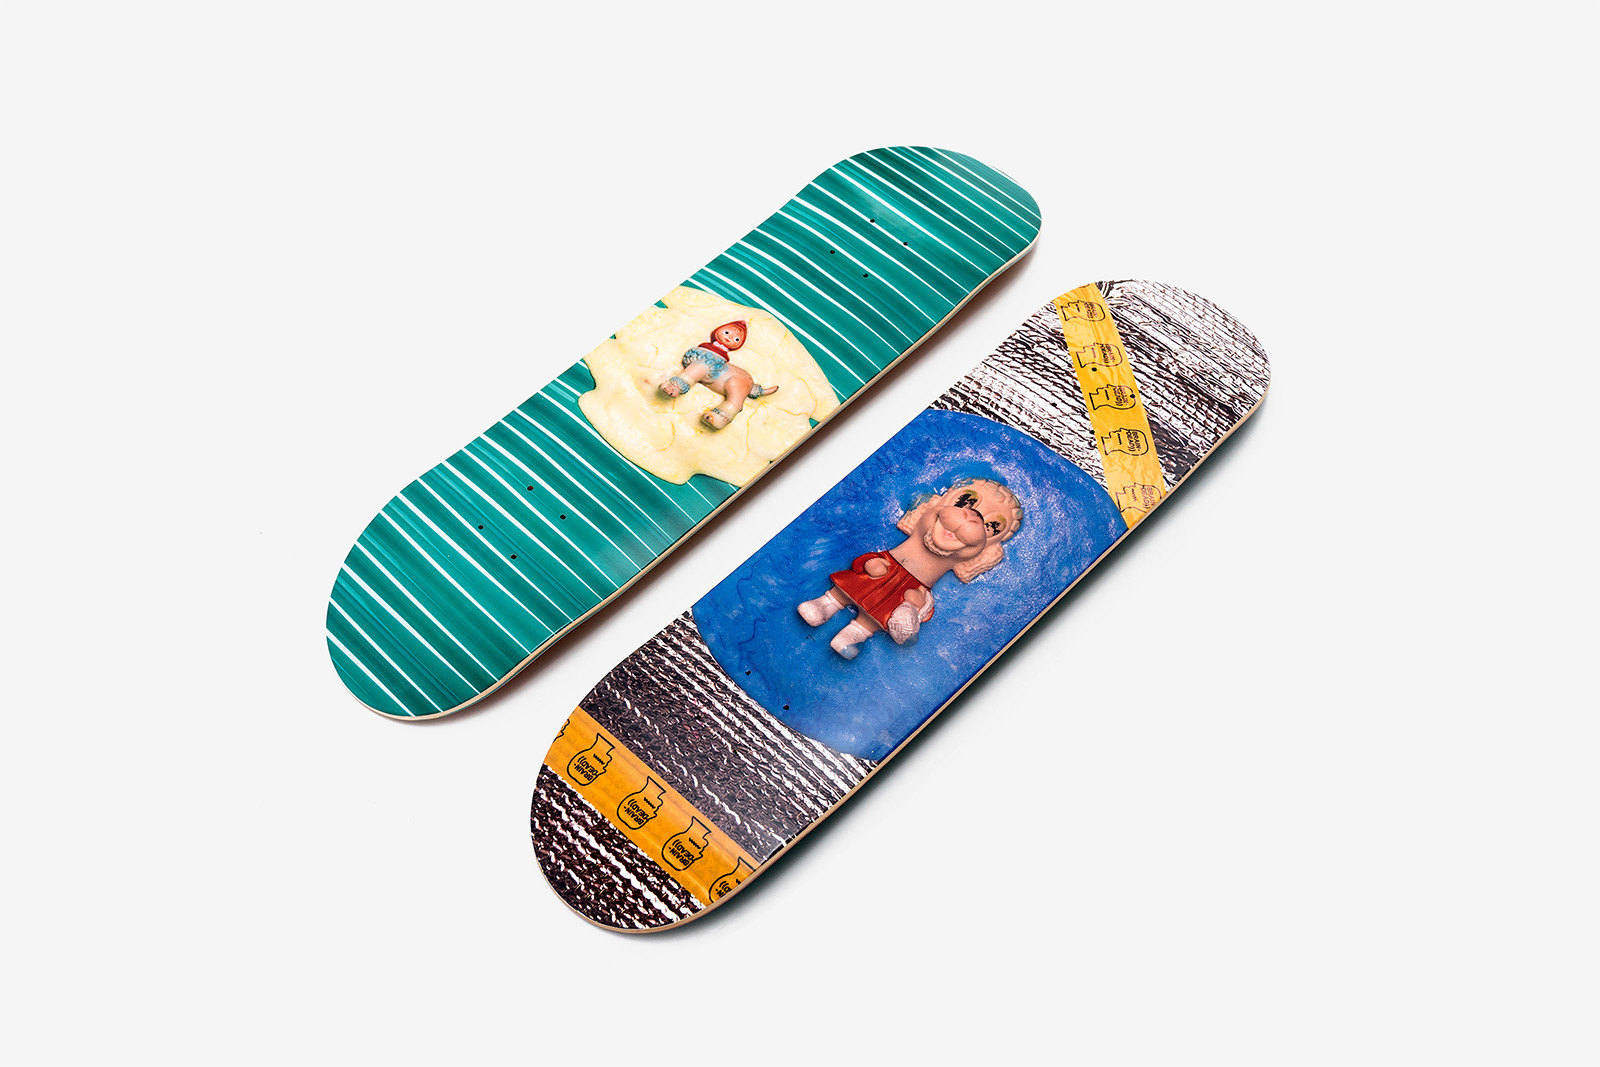 braindead kyle ng skate decks